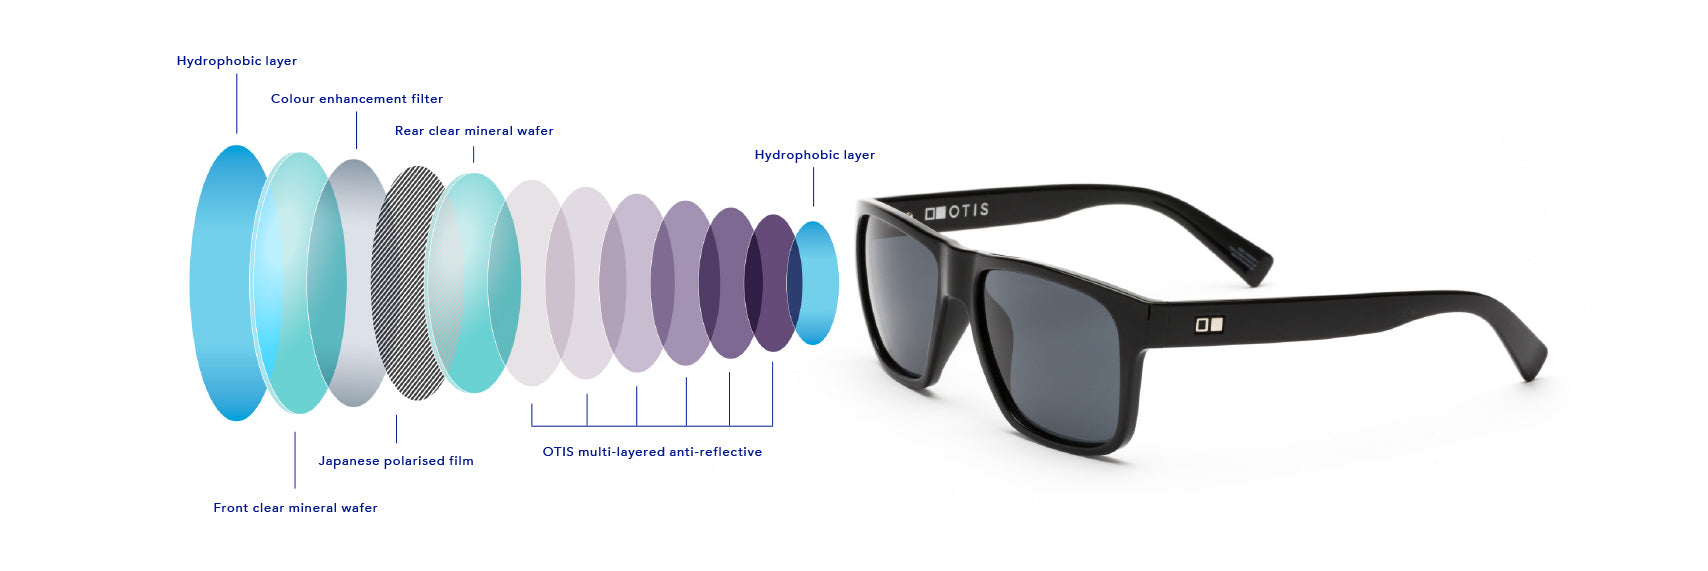 2b83091f701 L.I.T. Lens from OTIS Eyewear